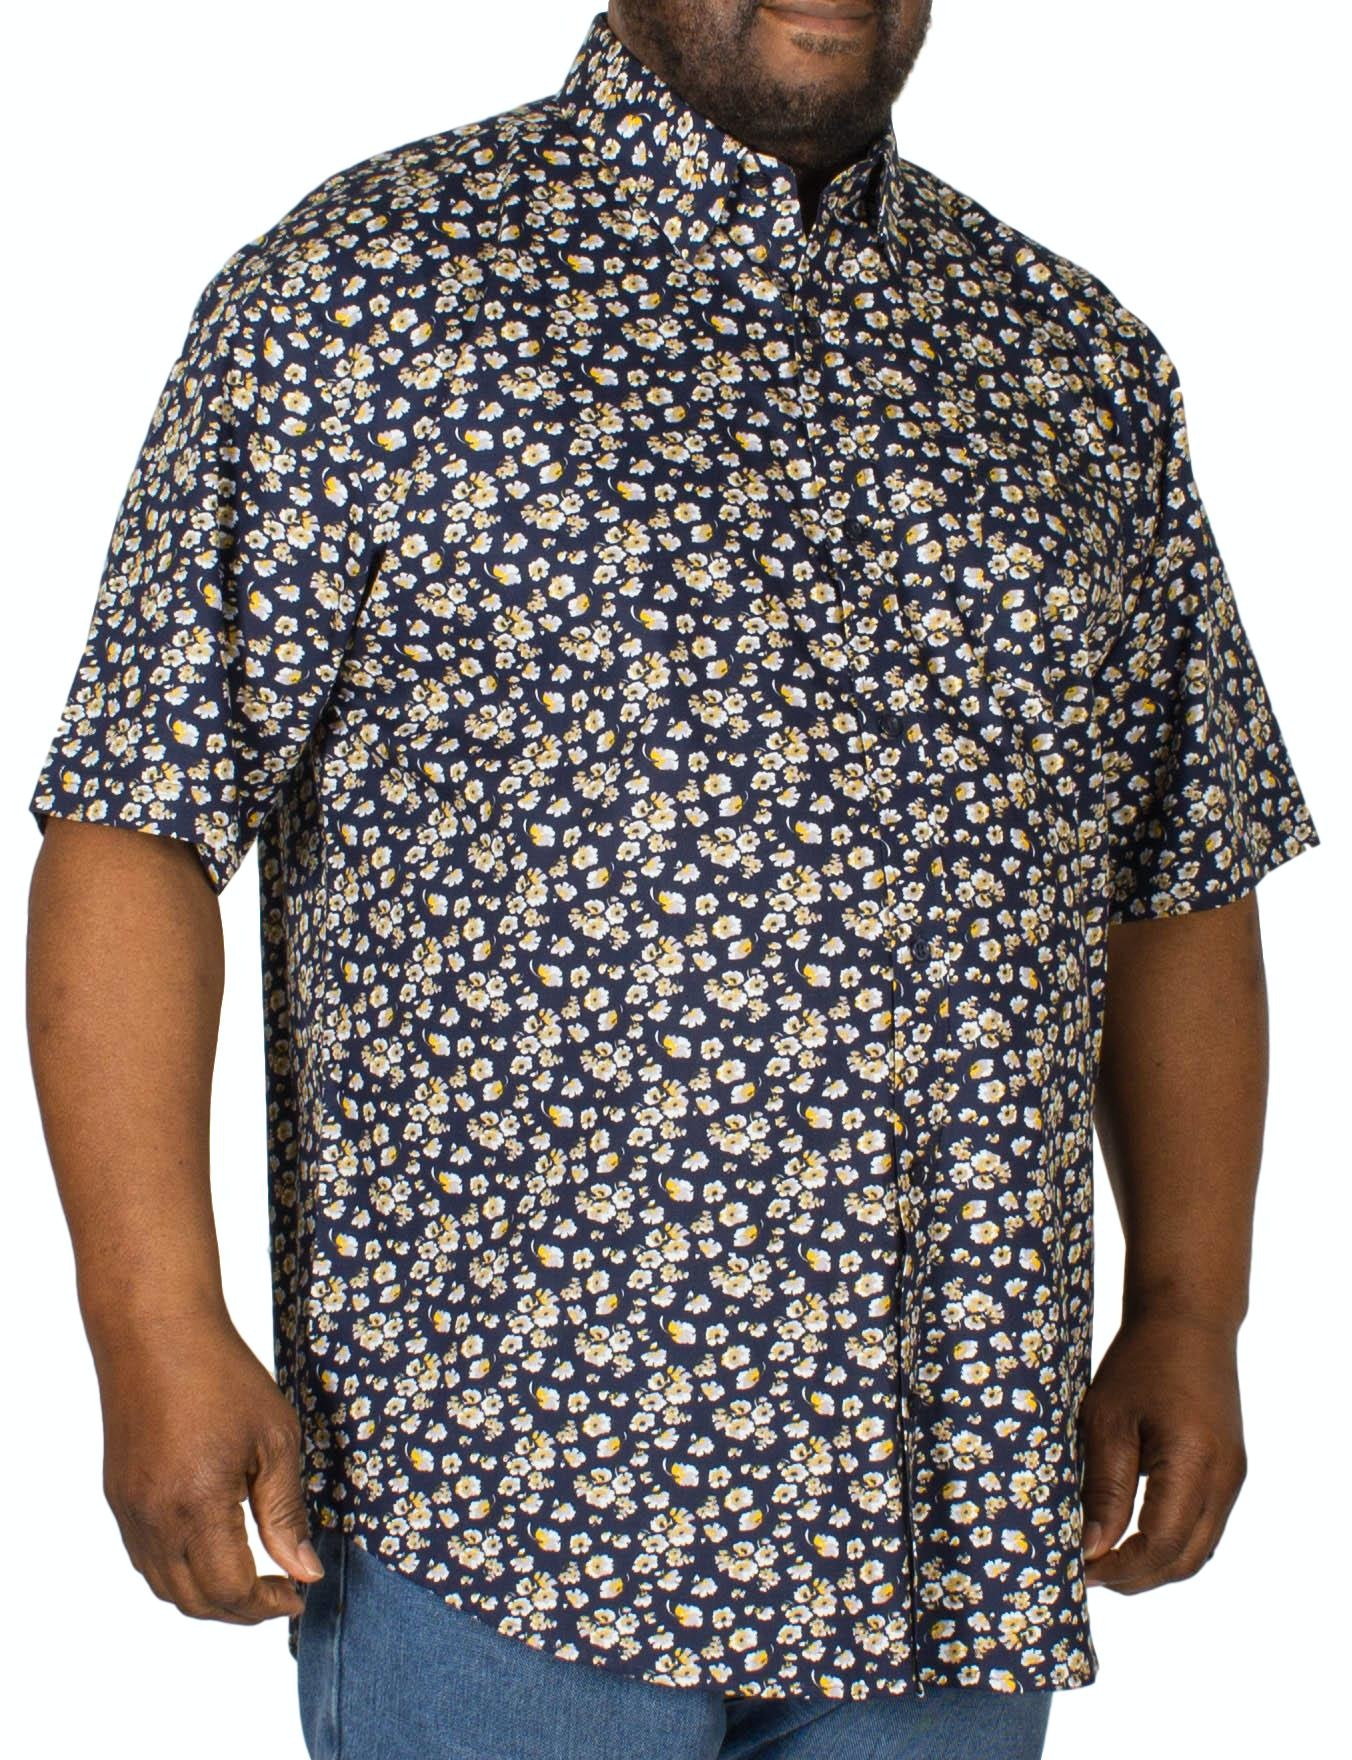 Espionage Floral Print Short Sleeve Shirt Navy